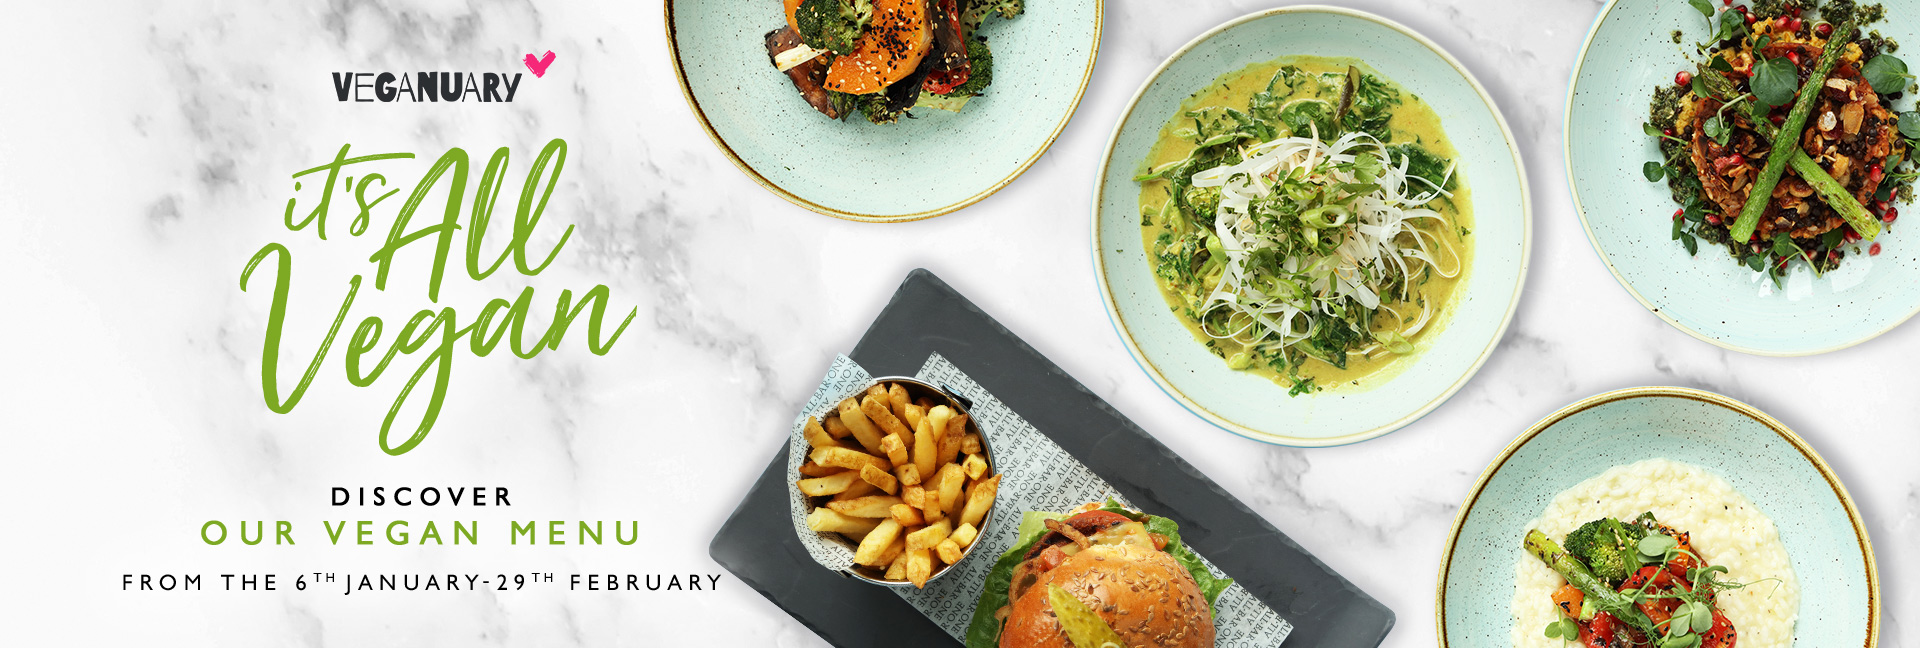 Veganuary Menu at All Bar One Cannon Street